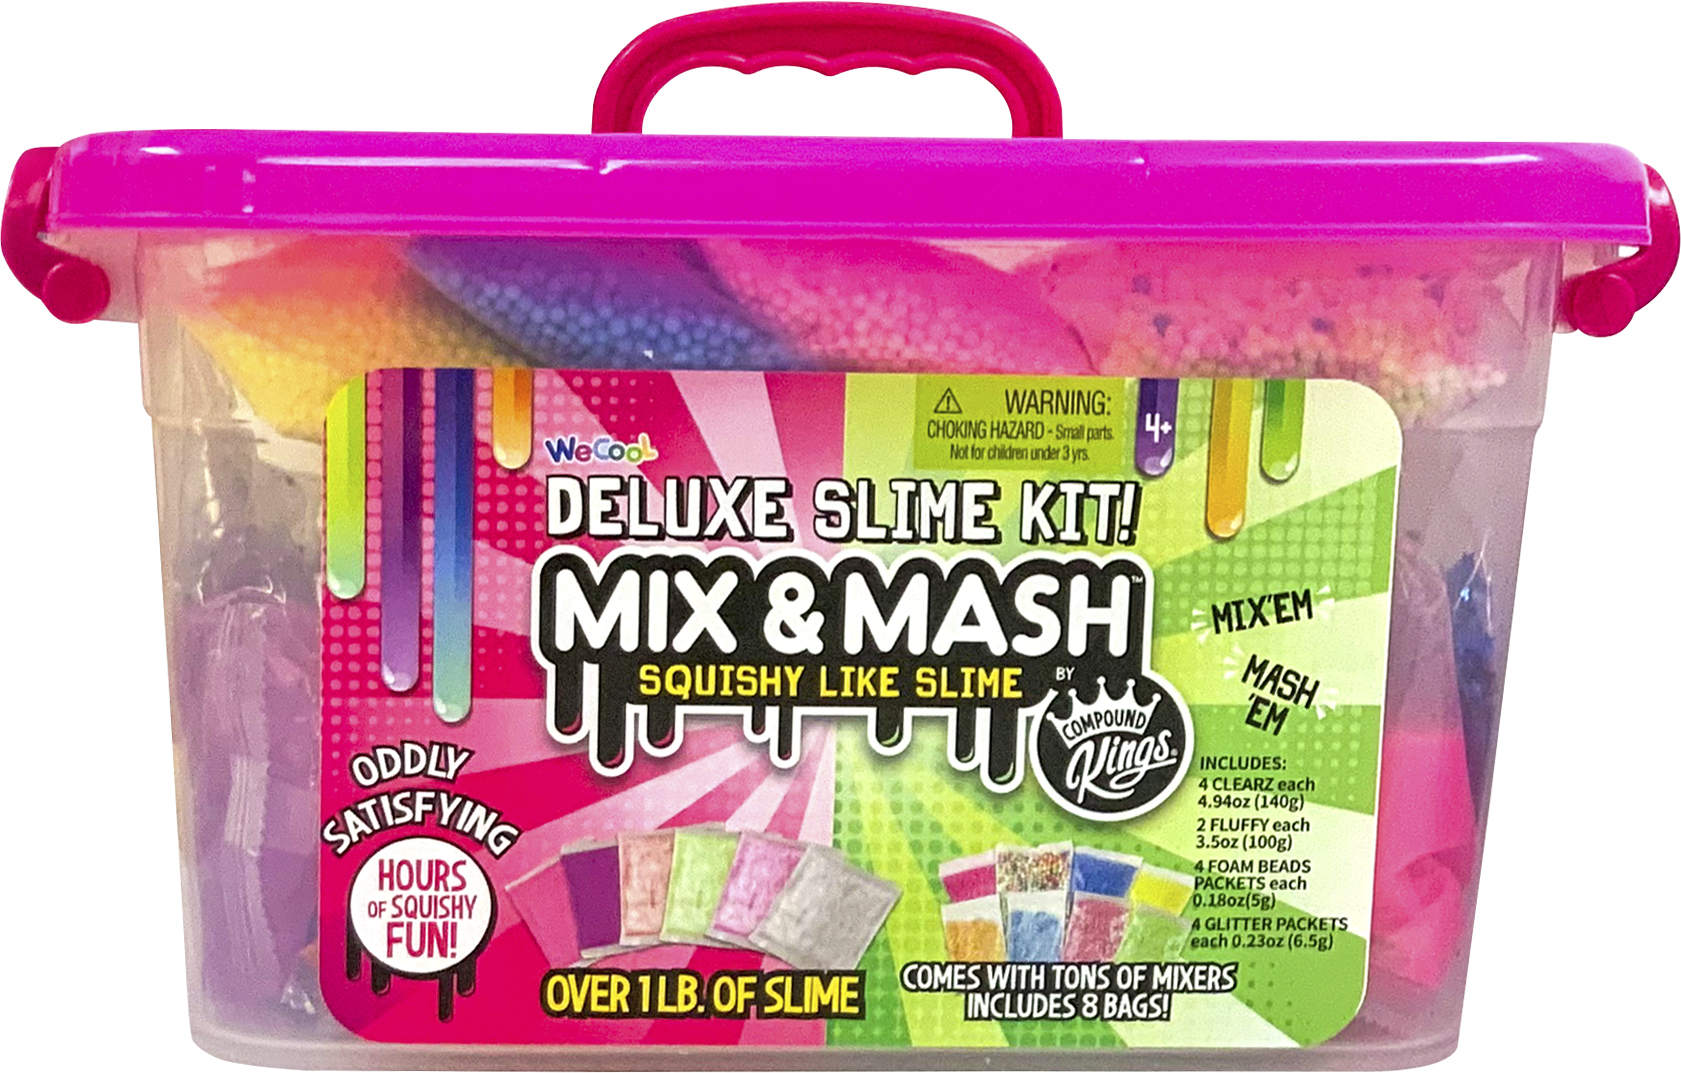 Mix and Mash Deluxe Slime Kit Caddy